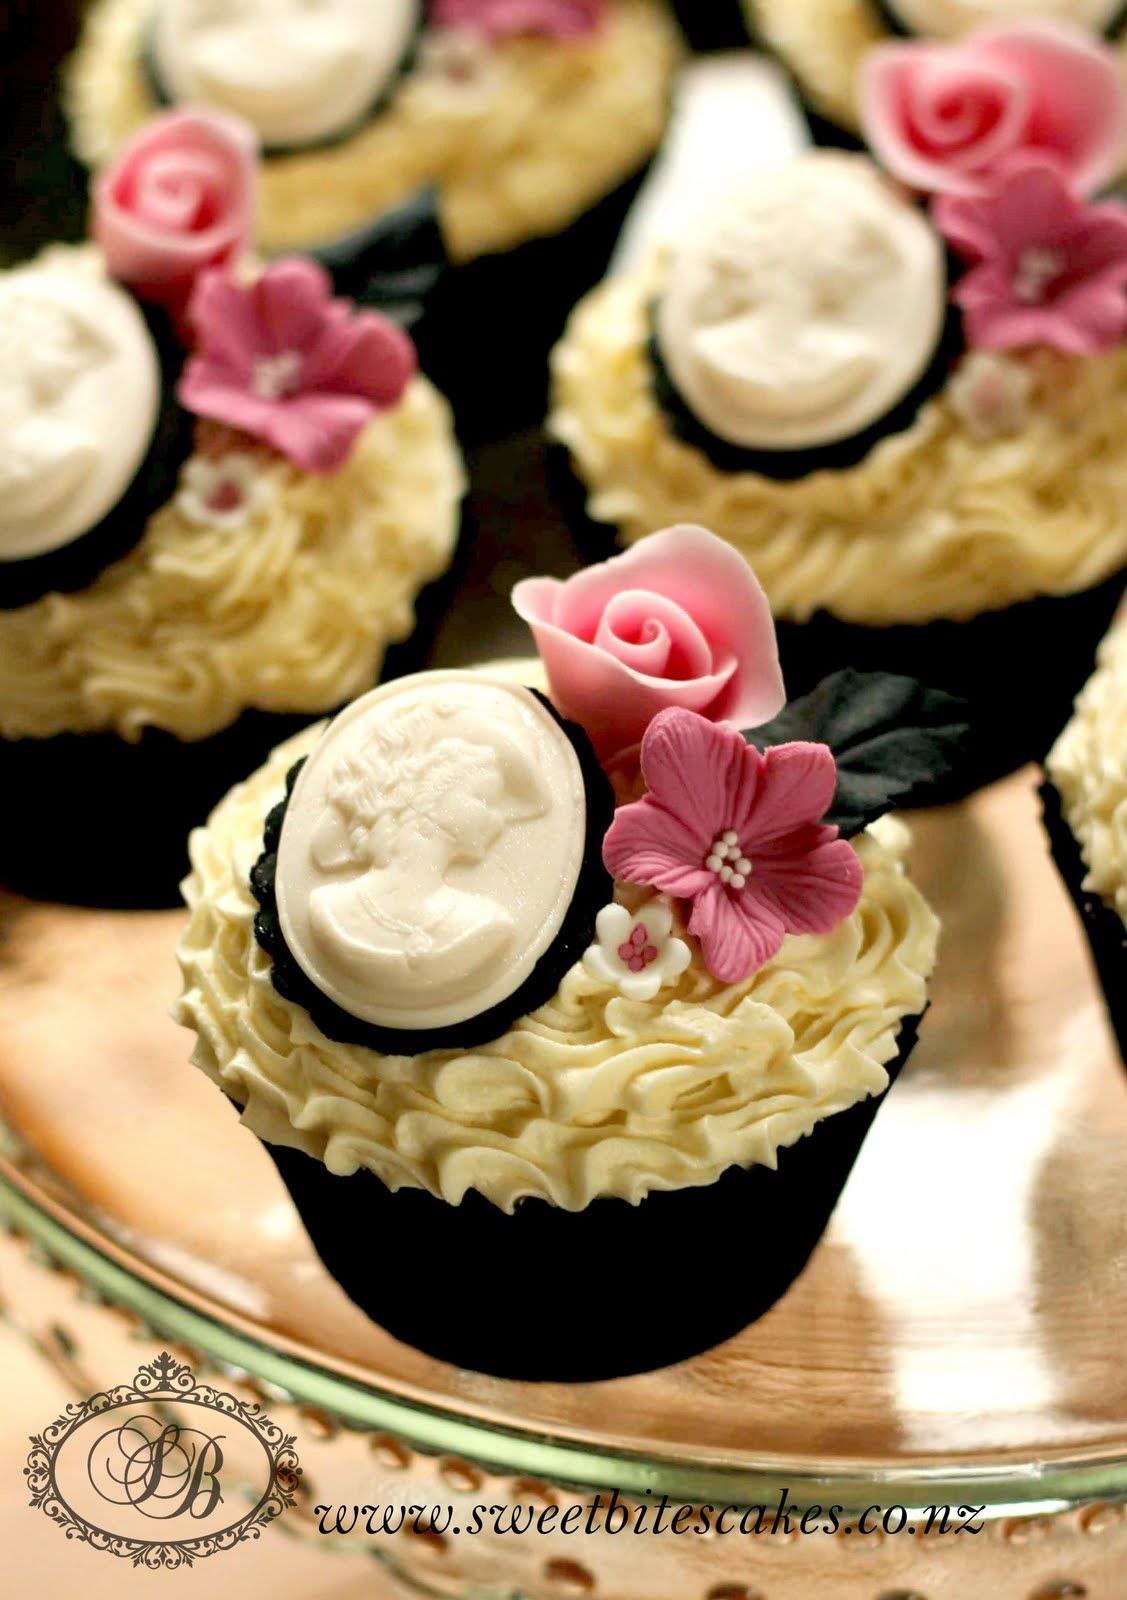 Muffins Decorados Victorian Cameo Cupcakes Let S Eat Cupcakes Cake Victorian